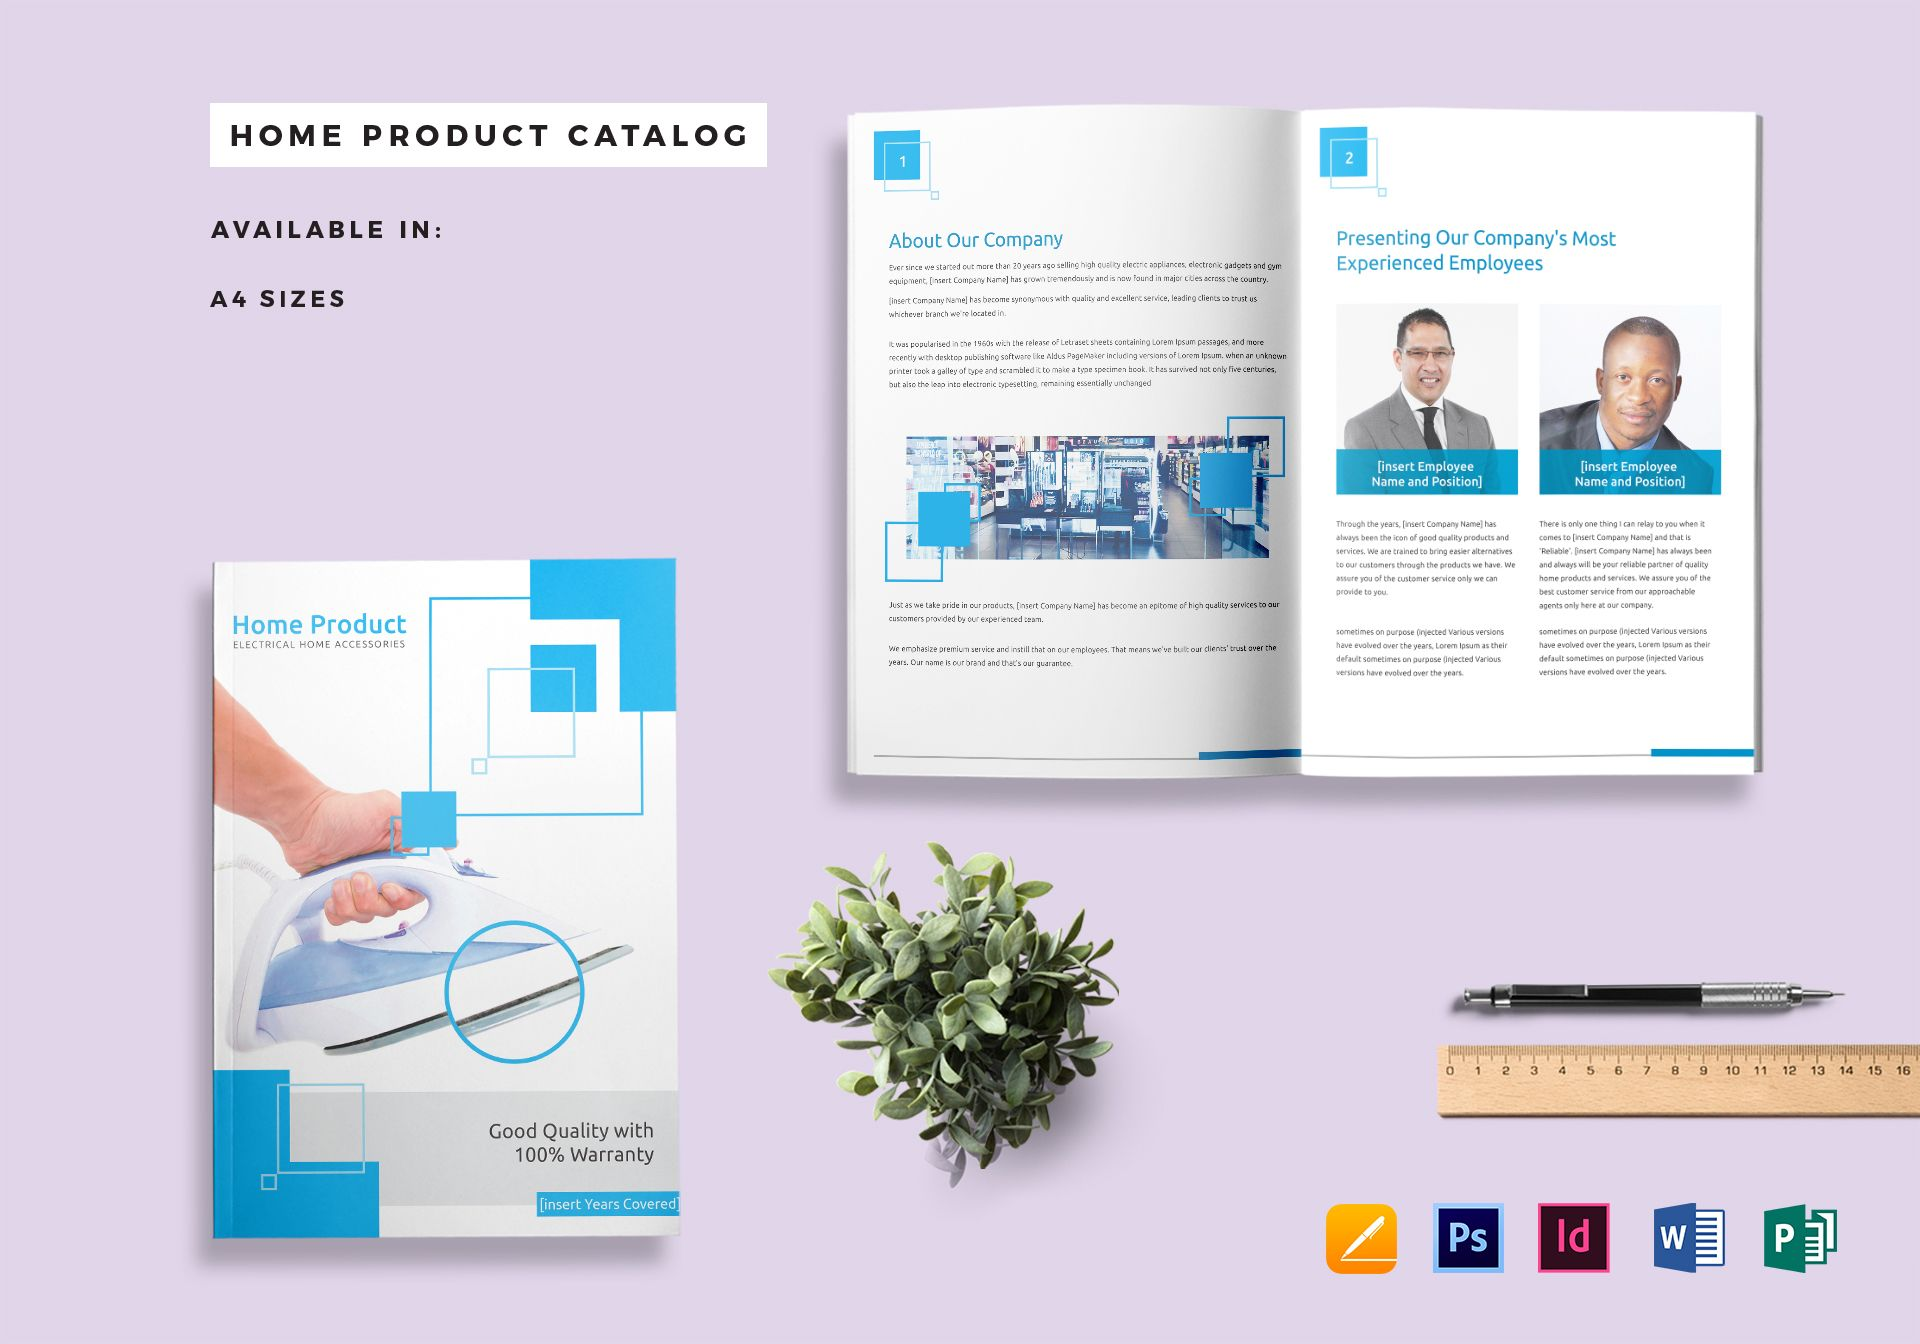 Home Product Catalog Template In PSD, Word, Publisher, InDesign, Apple Pages